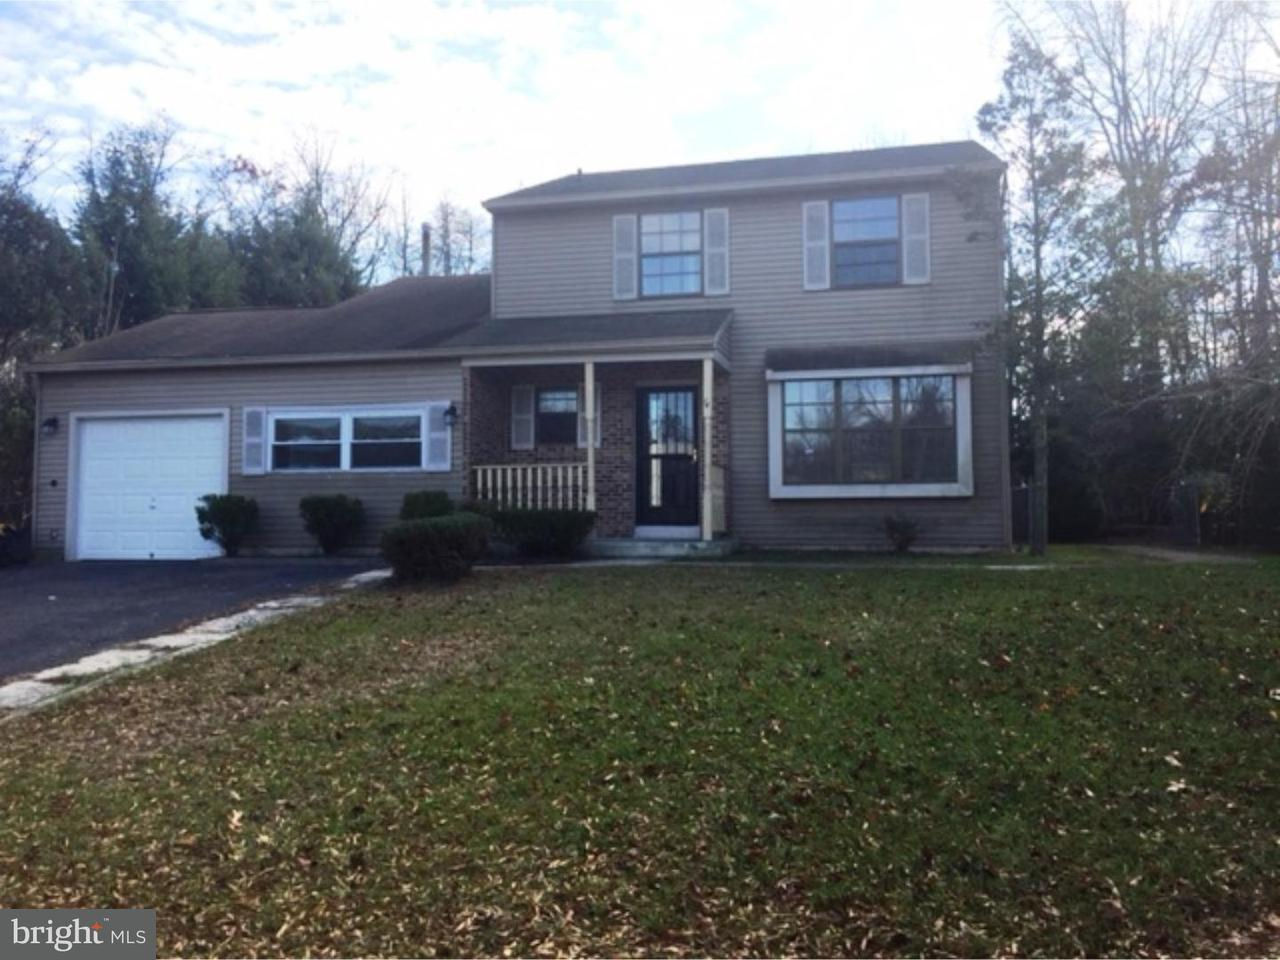 Single Family Home for Rent at 14 HEATHER Drive Sicklerville, New Jersey 08081 United States